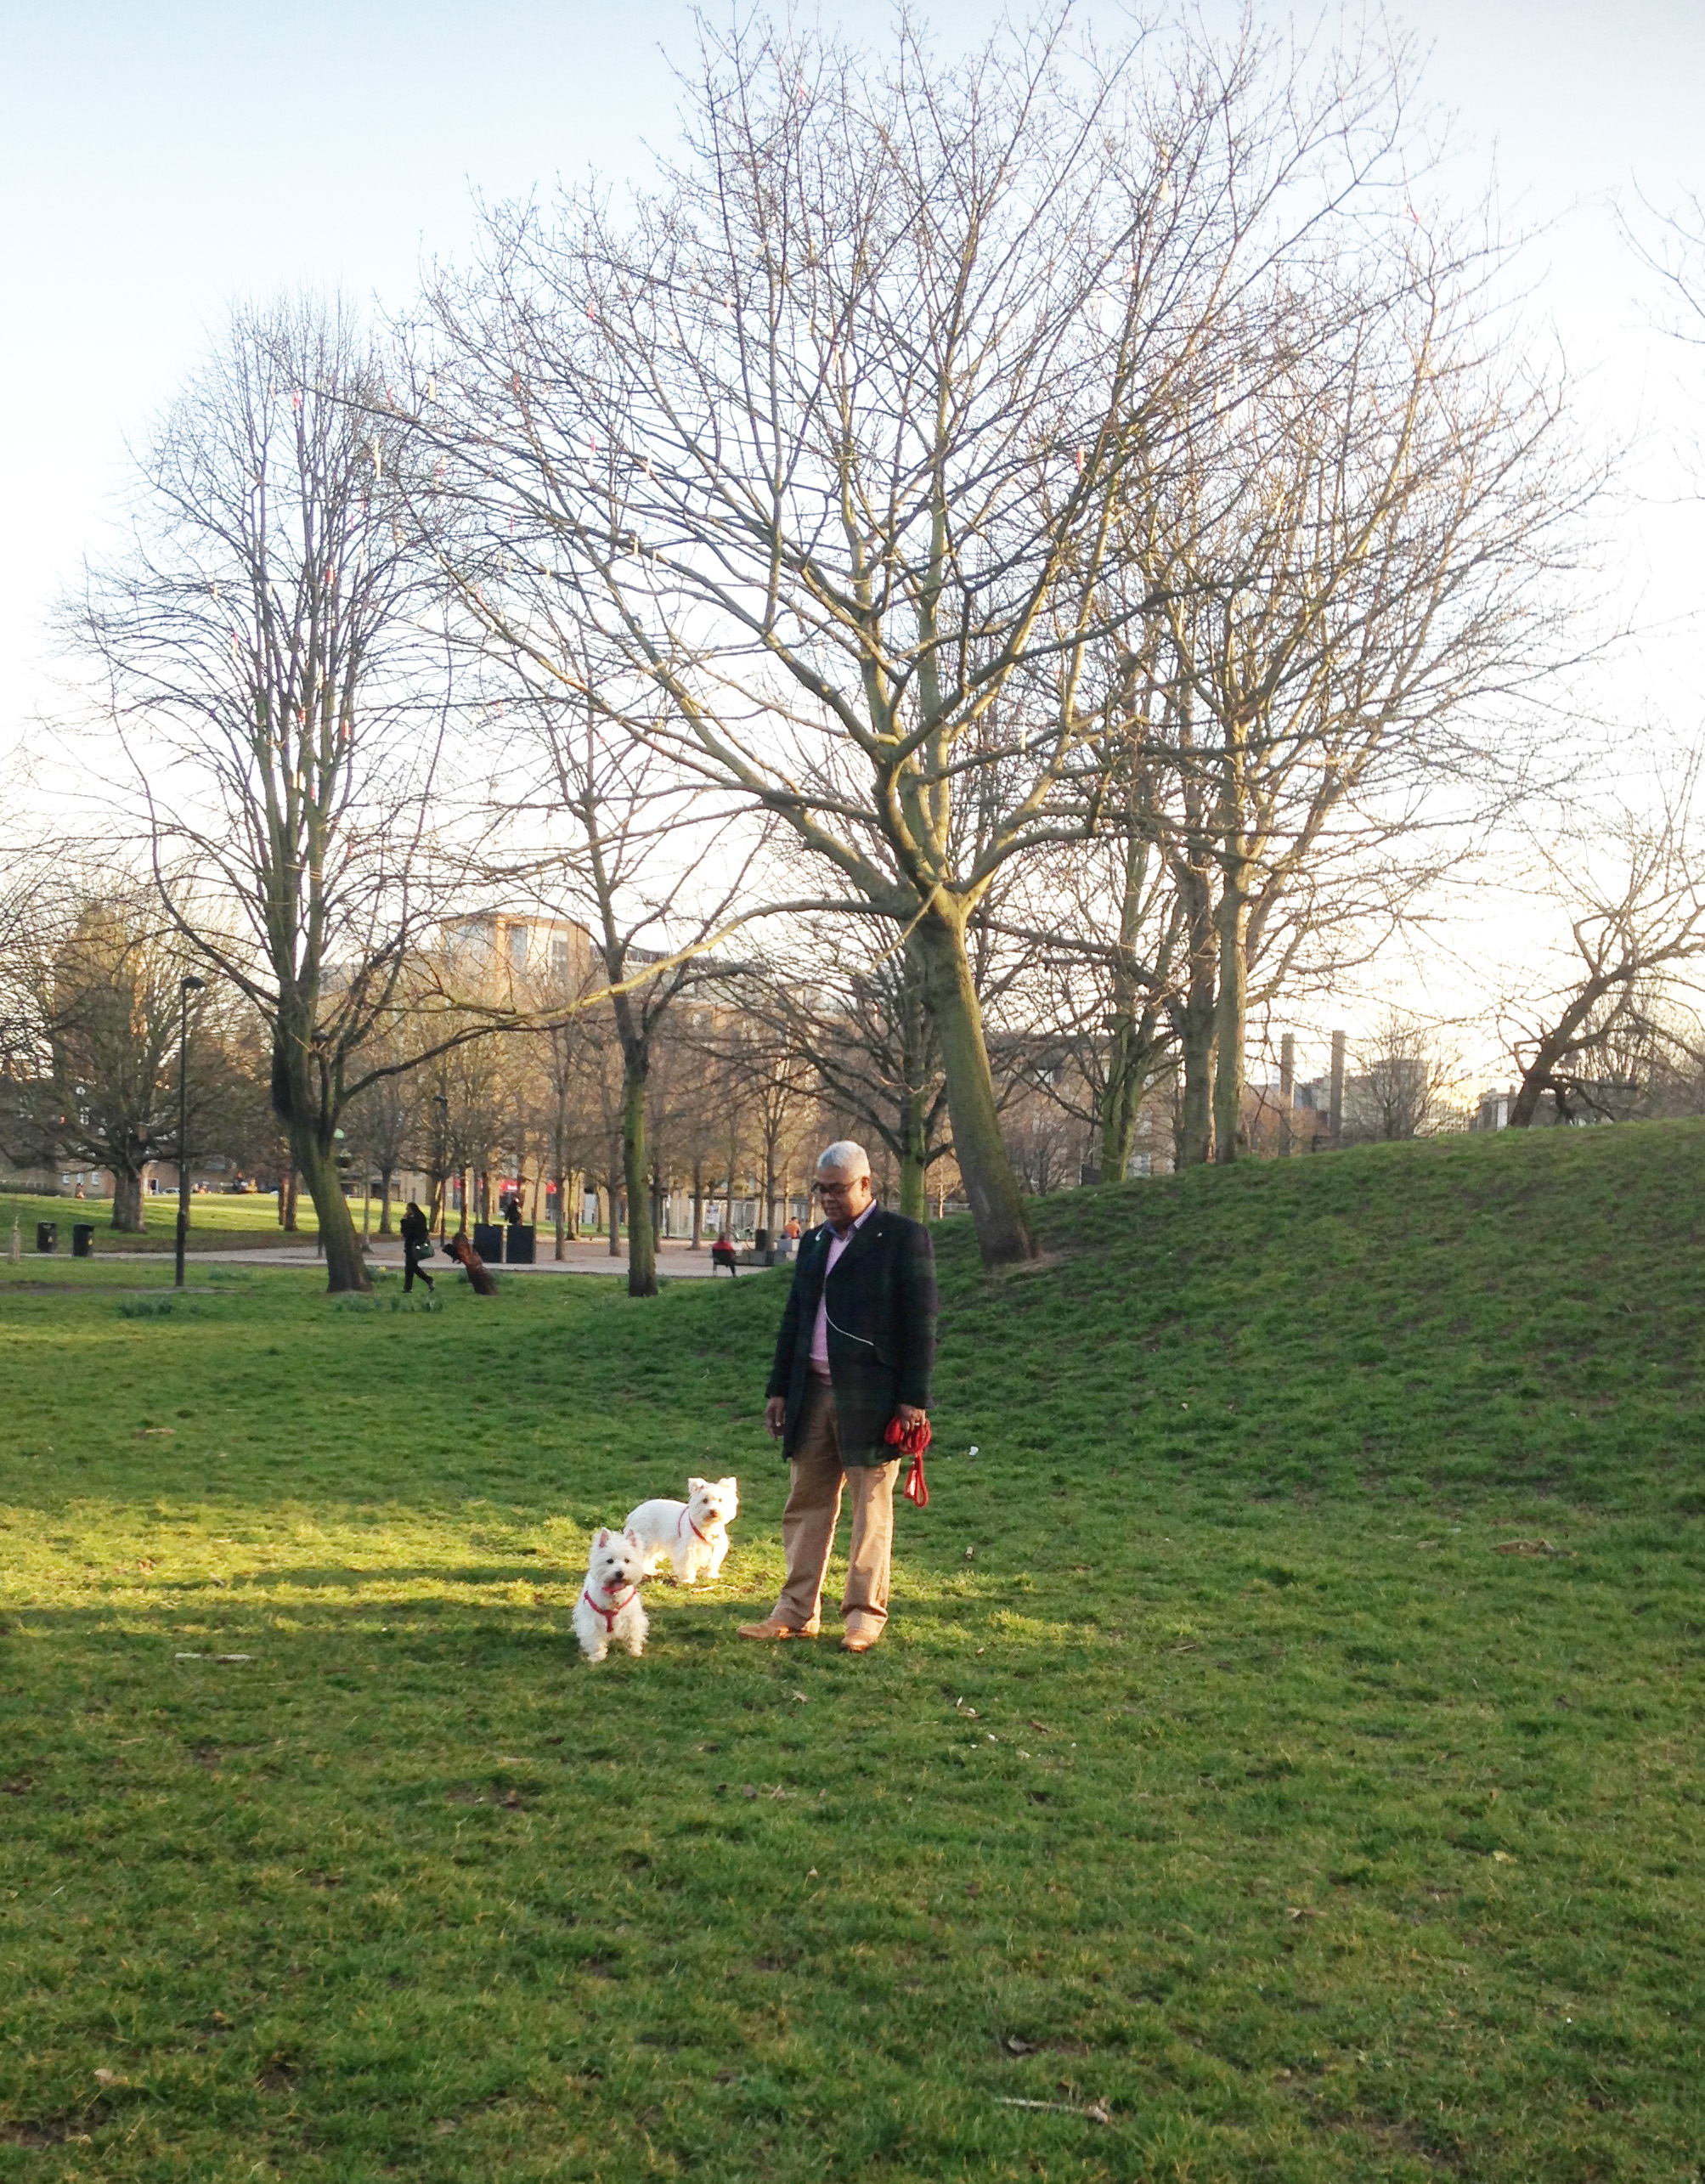 Maggie and Molly with their owner William